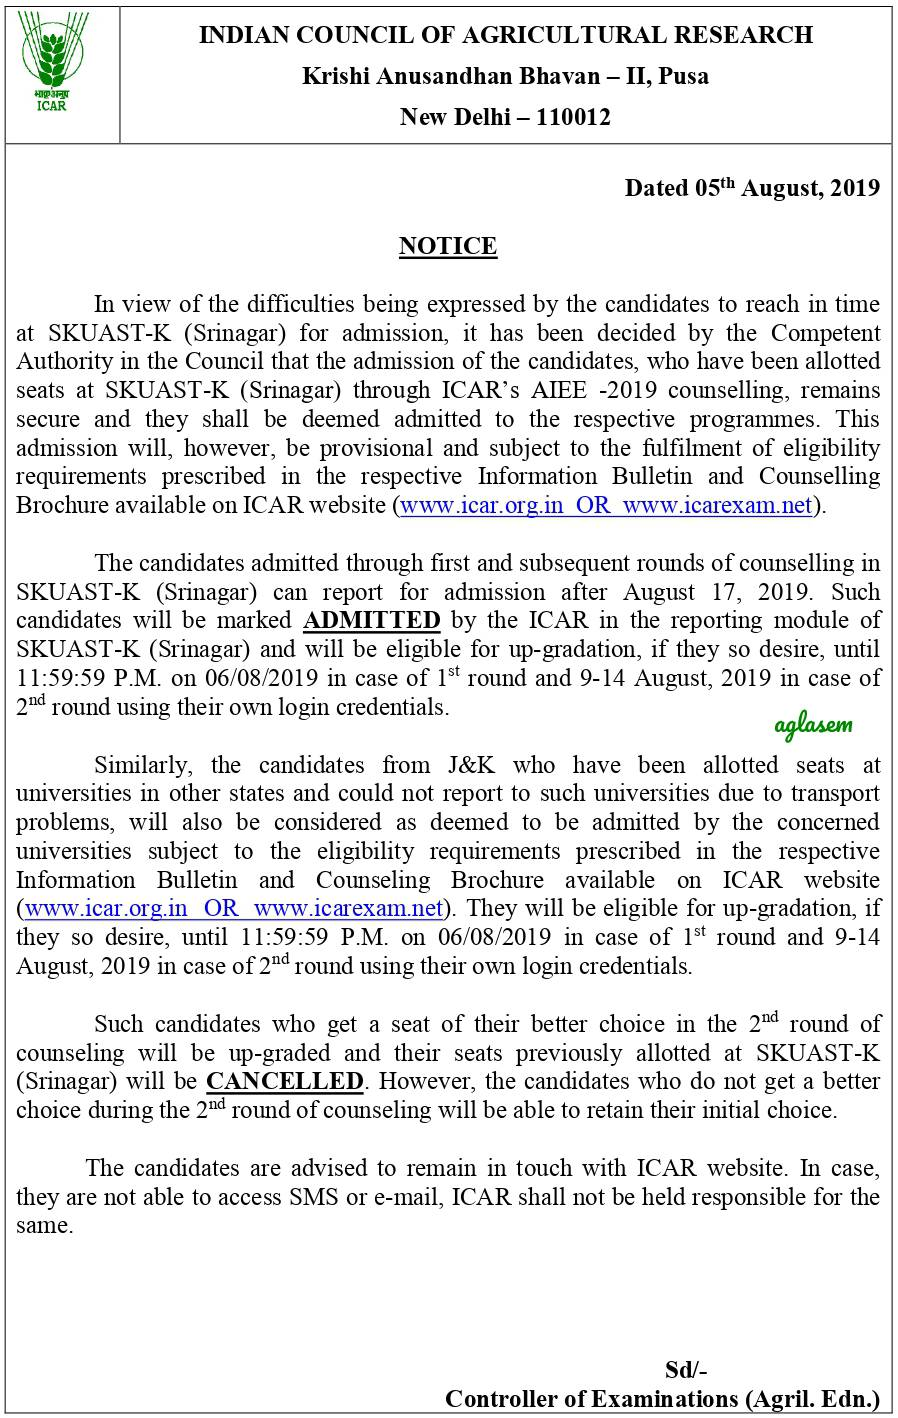 ICAR 2nd Round Seat Allotment 2019 Published at icarexam.net, Special Notice for J&K at icar.org.in